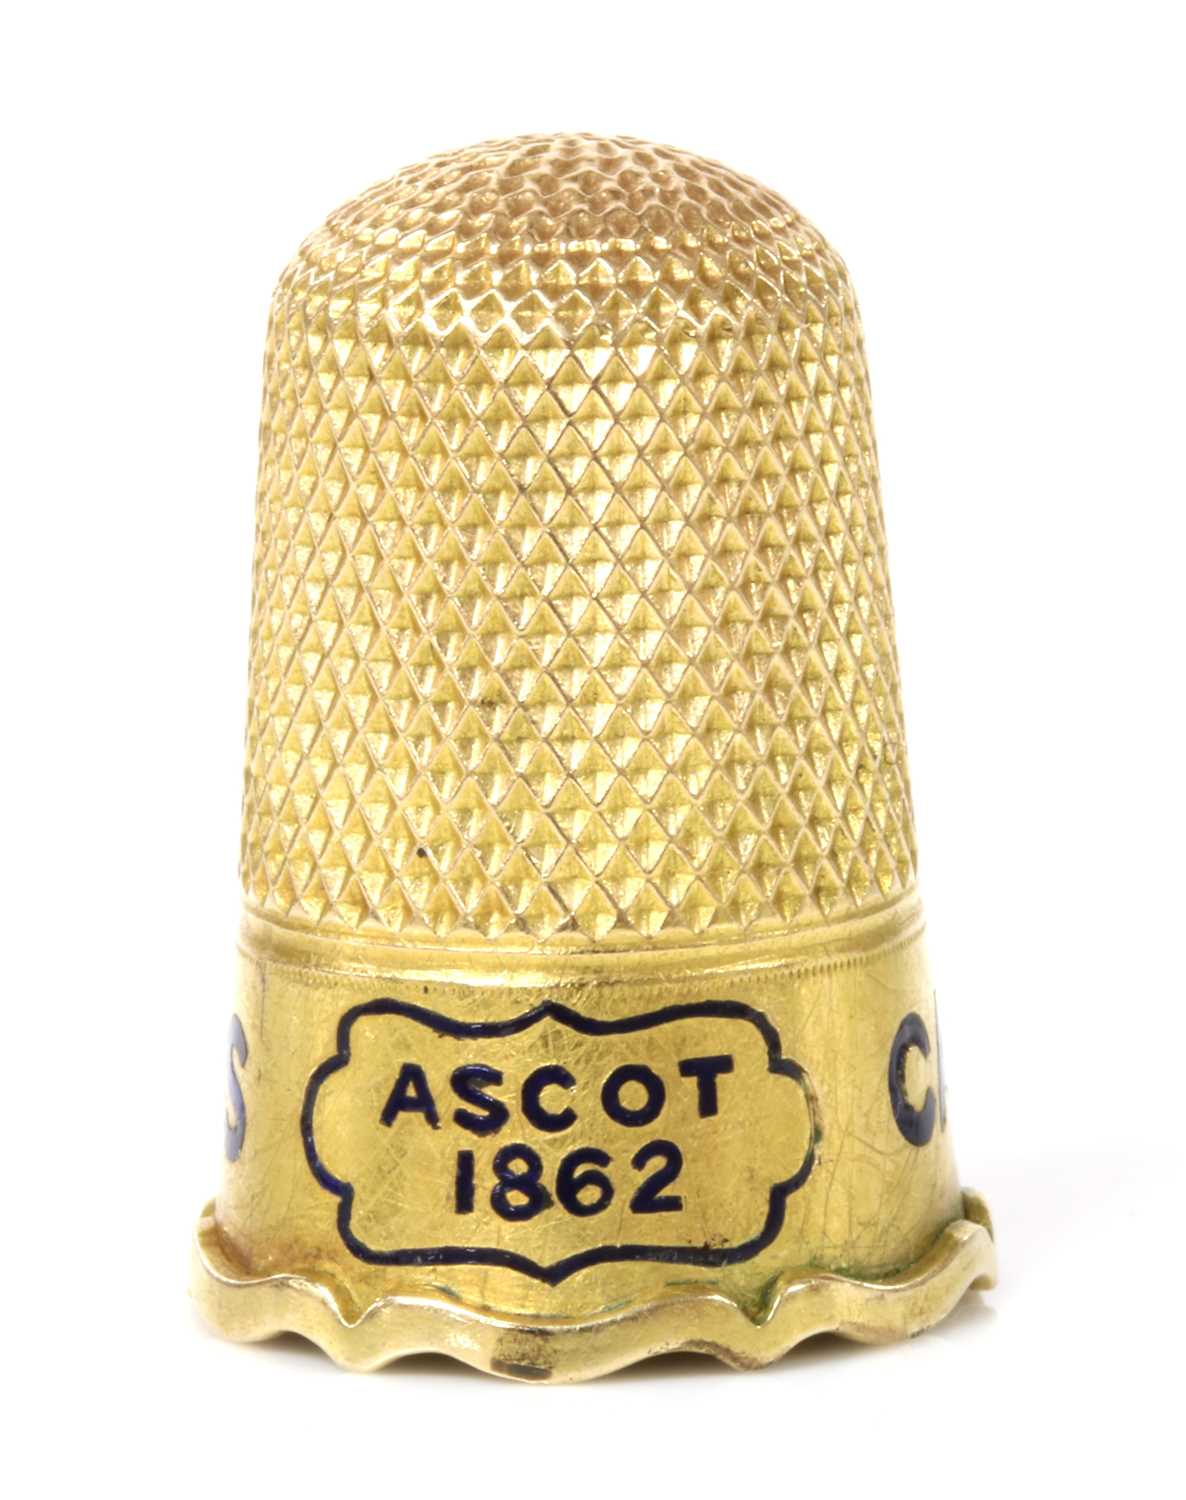 Of racing interest: a Victorian gold thimble, - Image 4 of 4